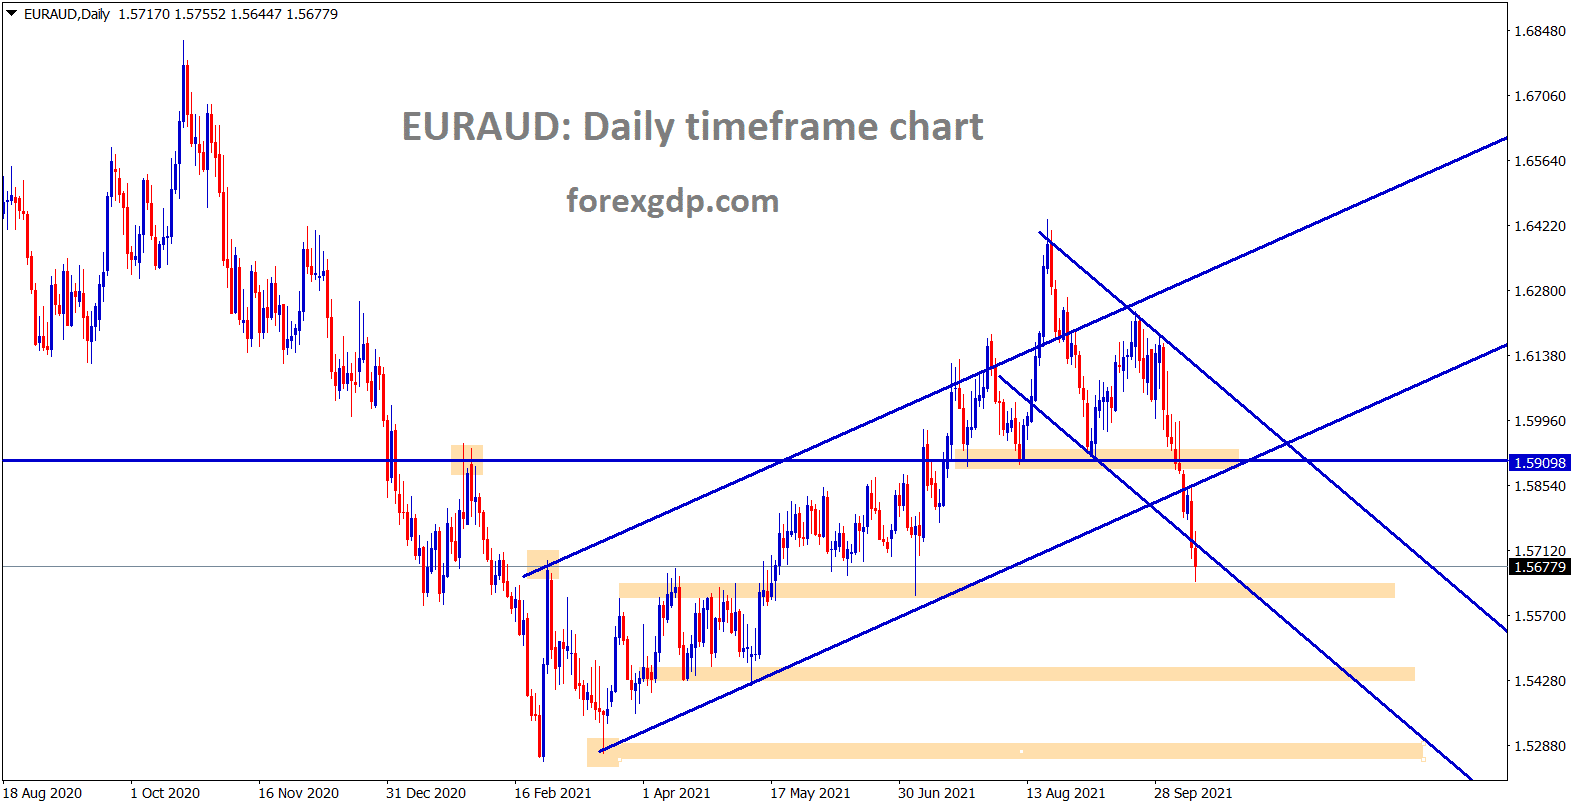 EURAUD is falling down continuously breaking the lows